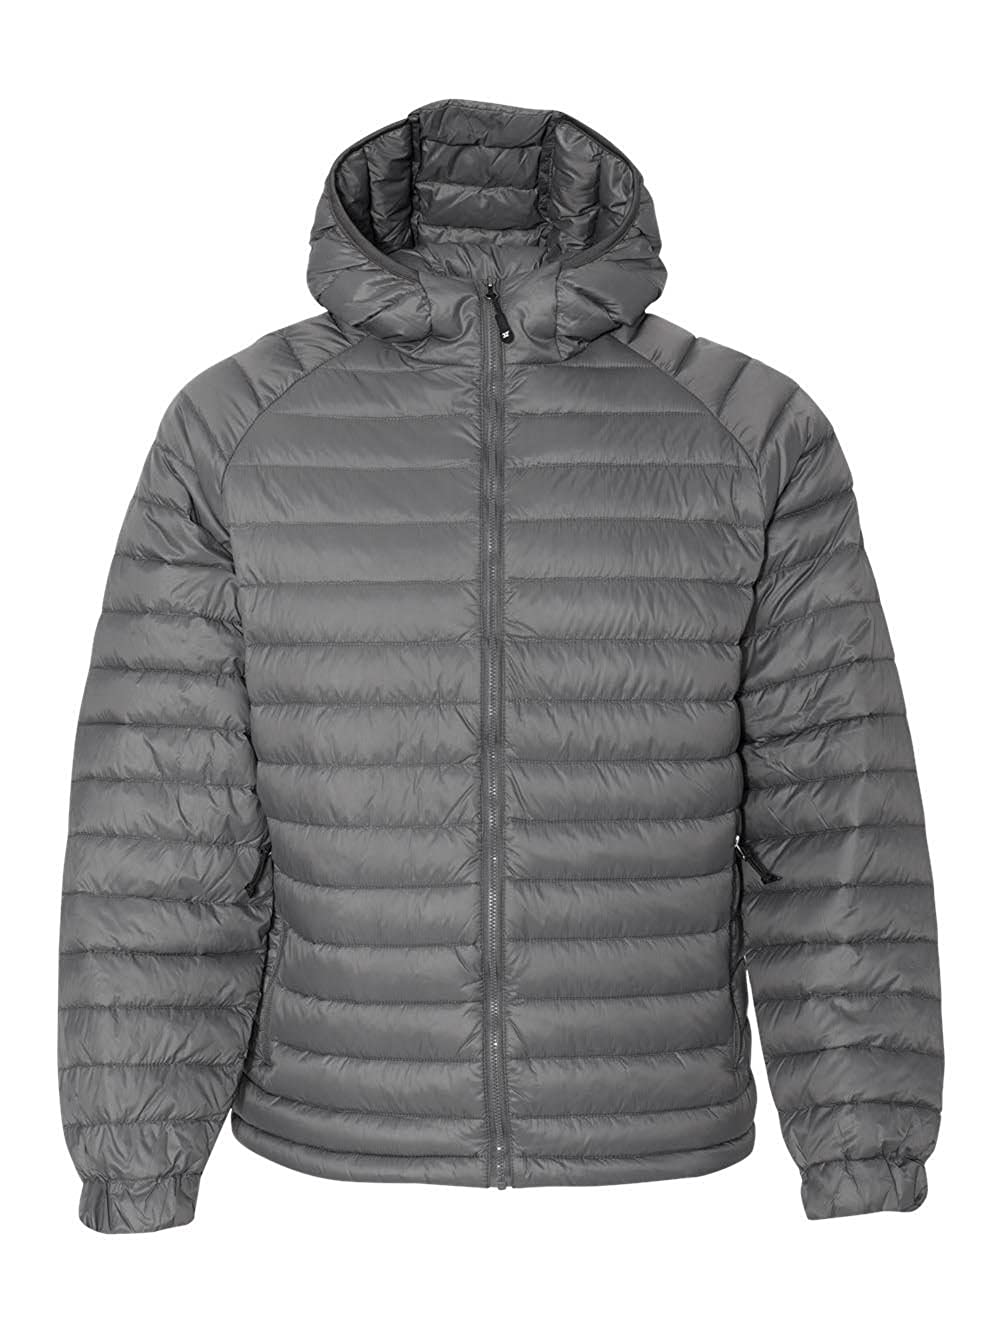 Weatherproof - 32 Degrees Hooded Packable Down Jacket - 17602